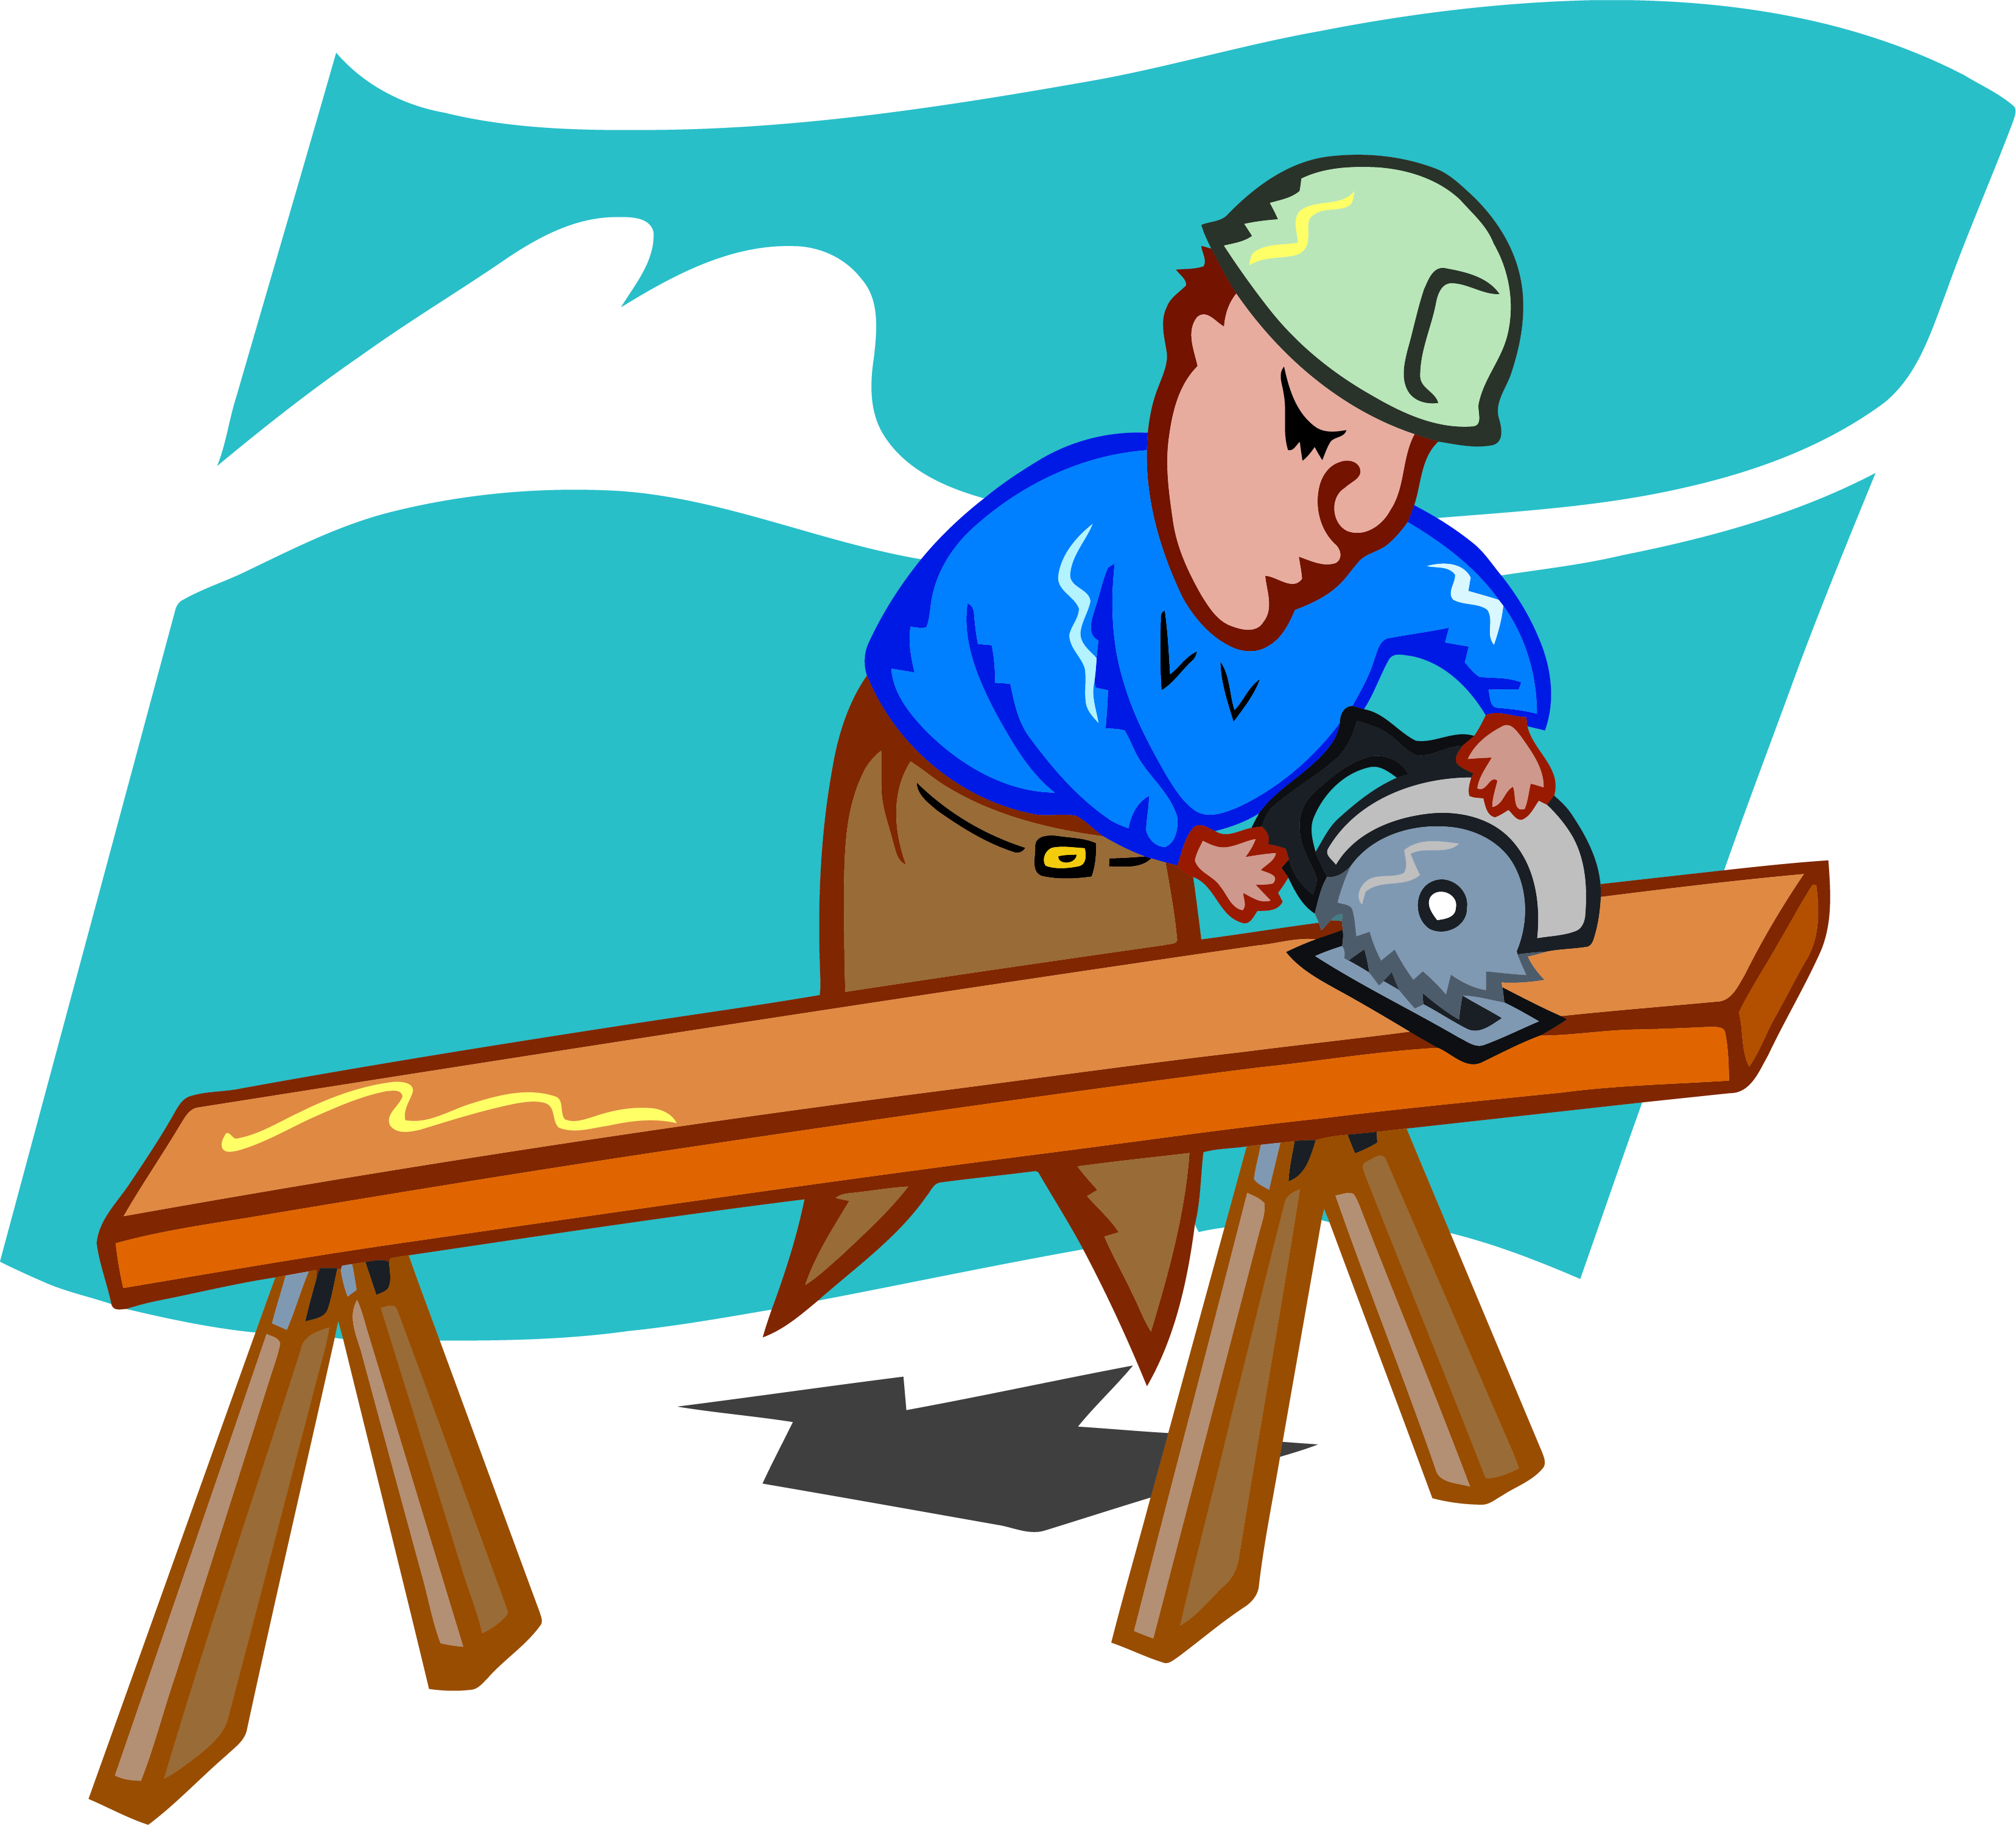 Carpentry clipart builder. Sawing carpenter png clipartlyclipartly